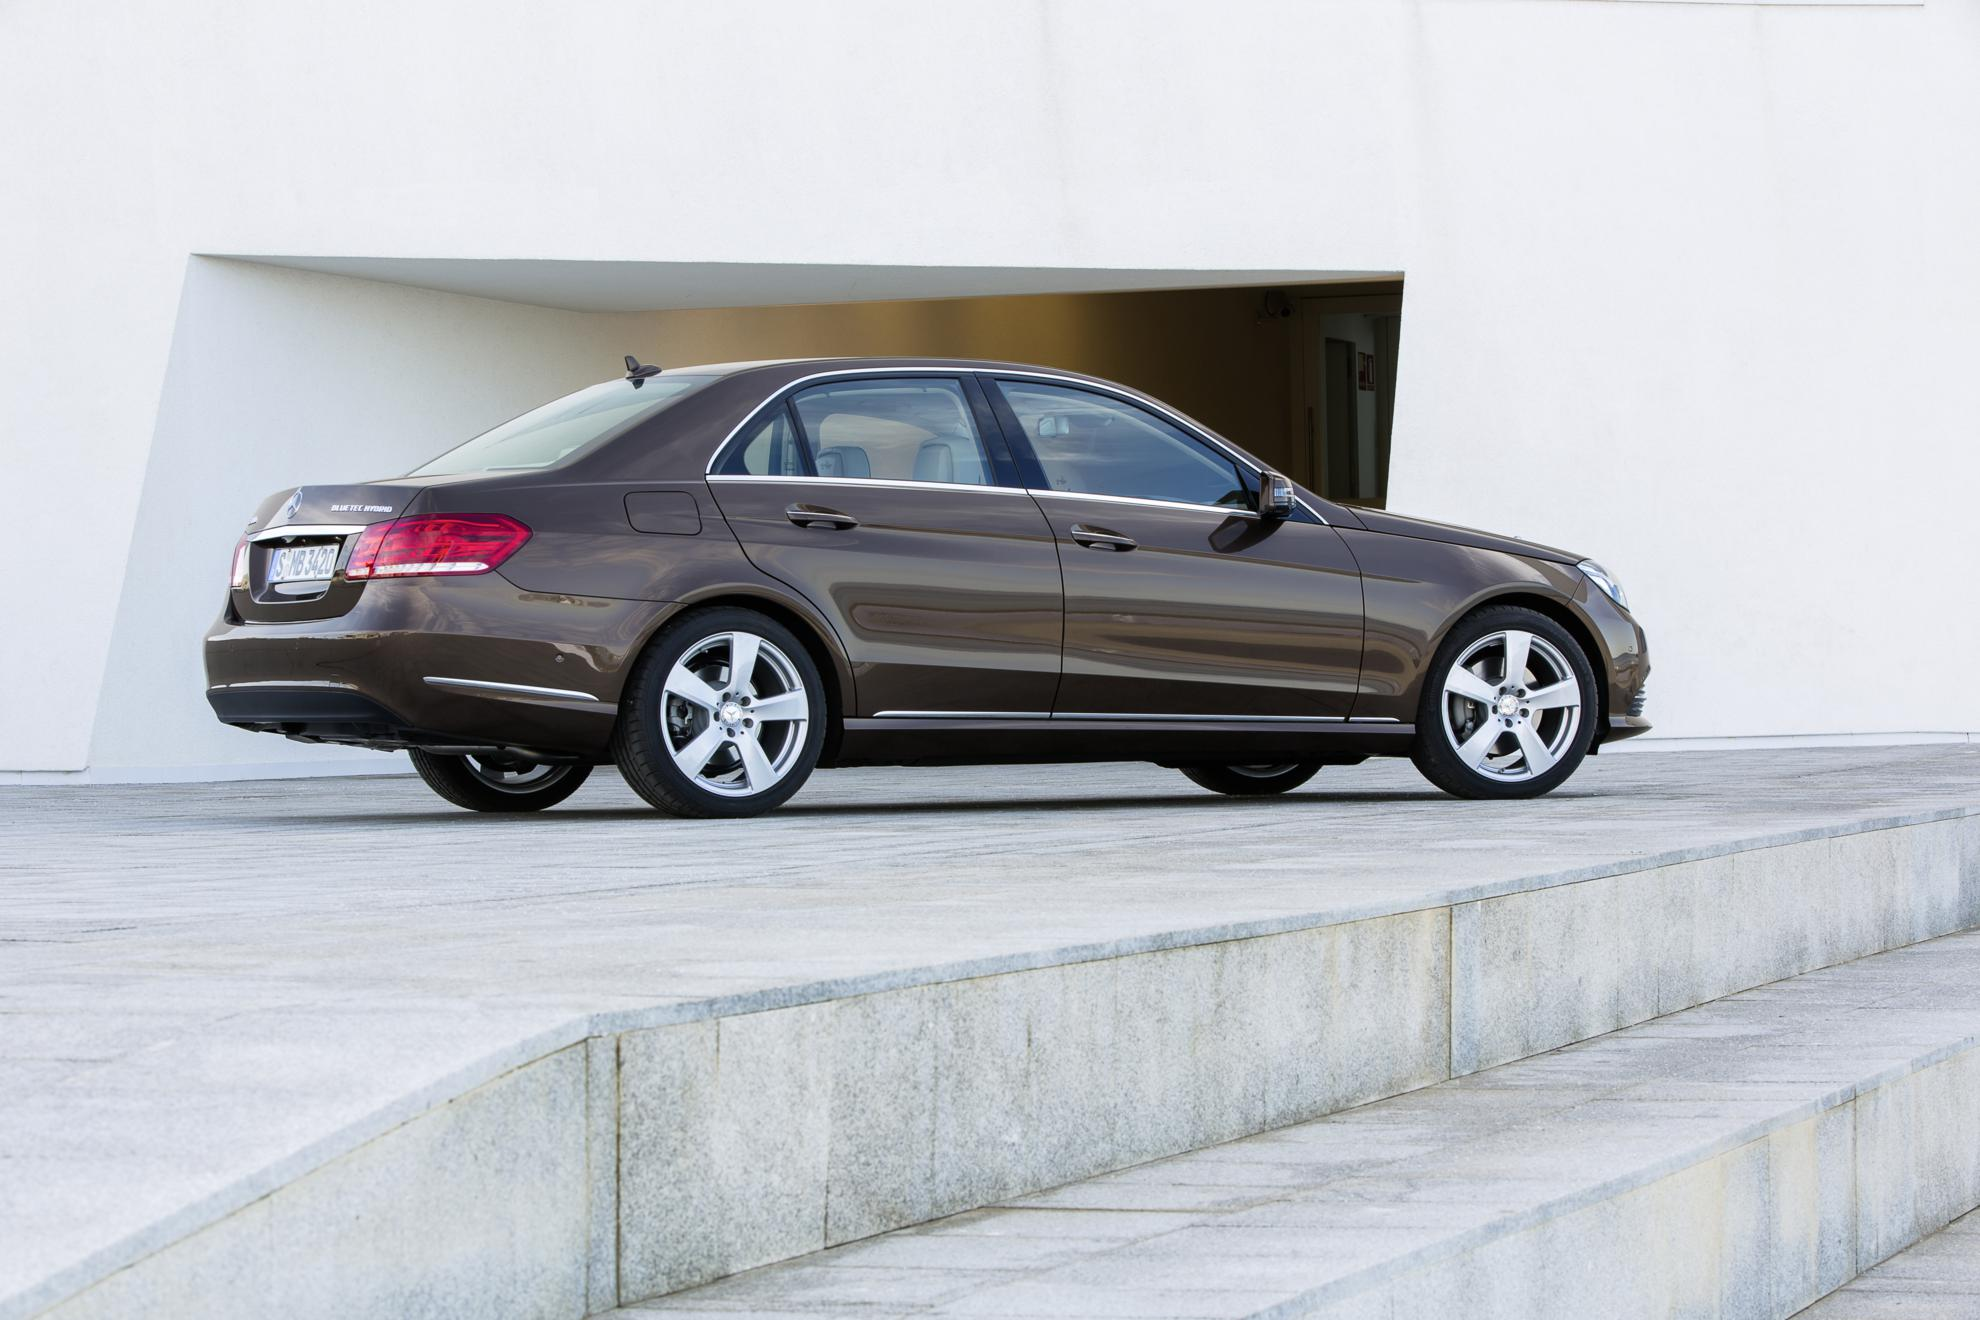 images of the new mercedes benz e class hybrid